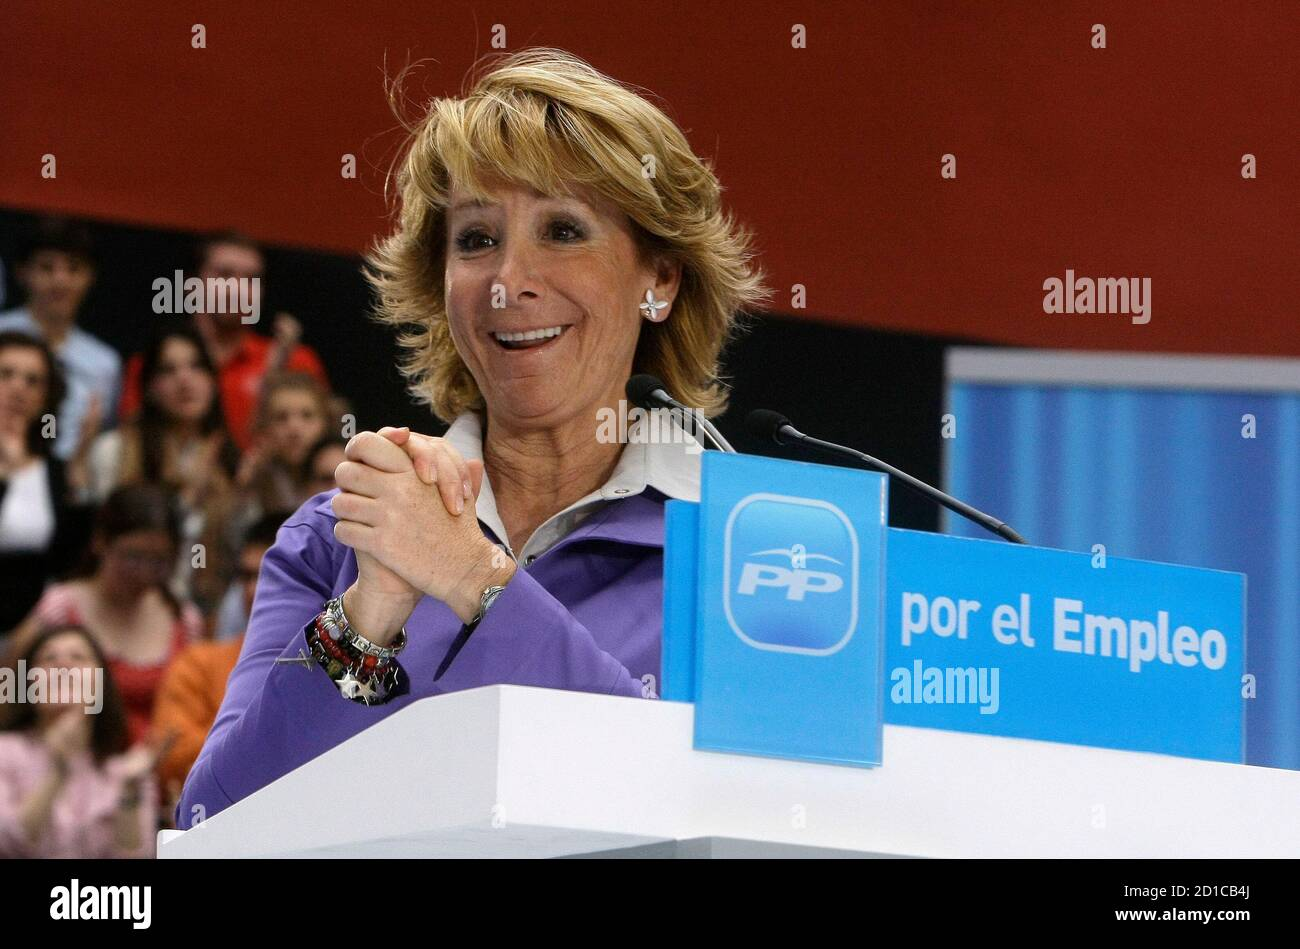 Madrid's regional President Esperanza Aguirre acknowledges applause during a rally about employment in Madrid April 25,  2009.  Banner reads 'For employment'. REUTERS/Andrea Comas (SPAIN POLITICS EMPLOYMENT BUSINESS) Stock Photo